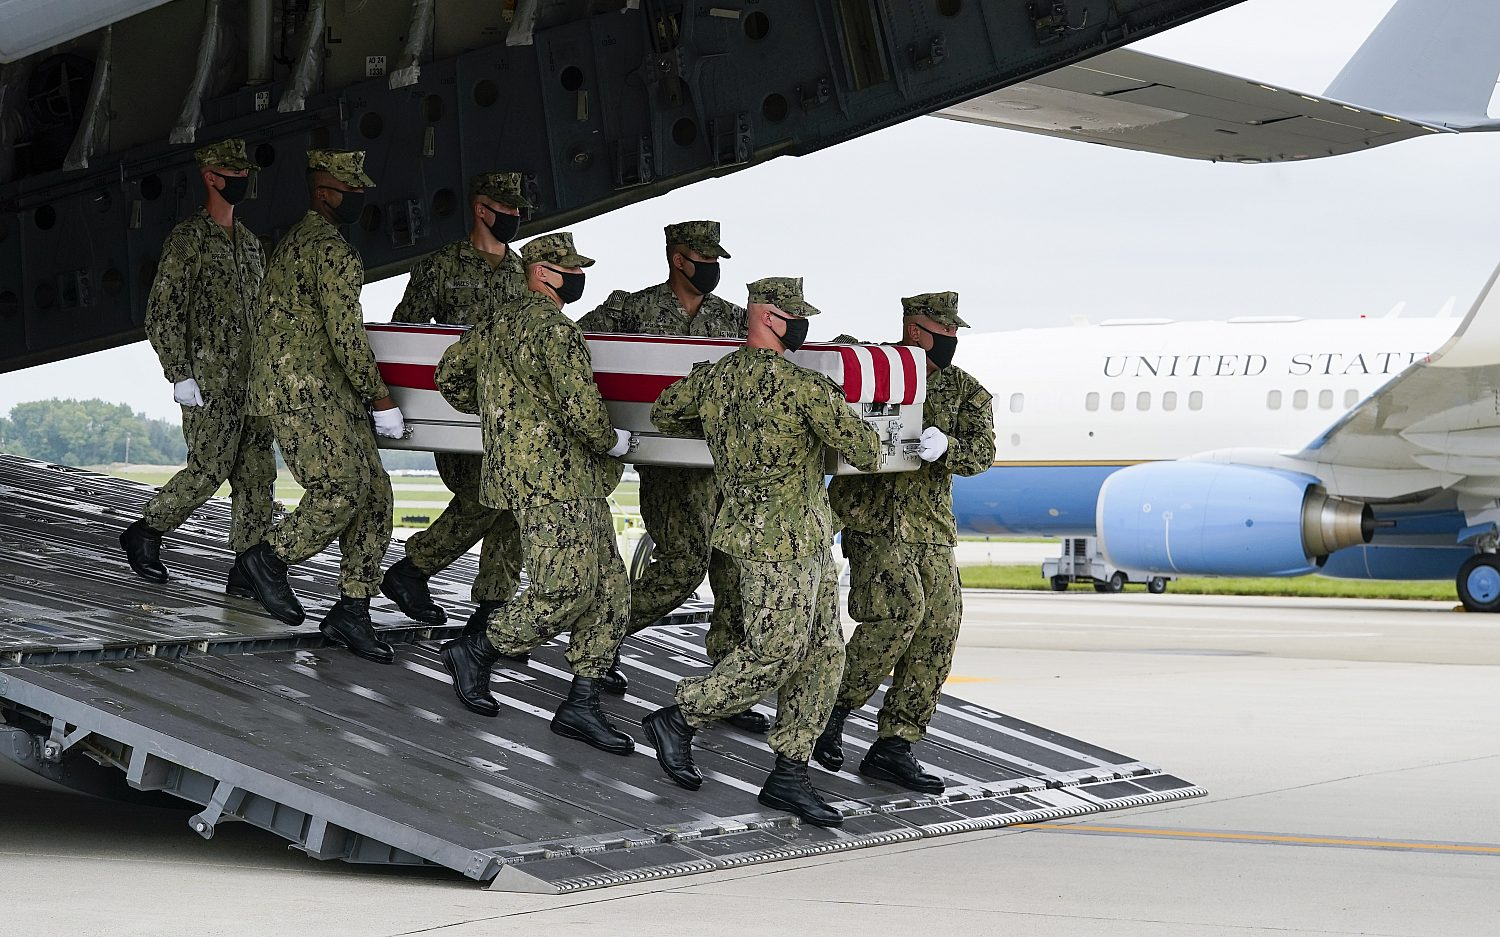 Biden pays respect to troops killed in Afghanistan